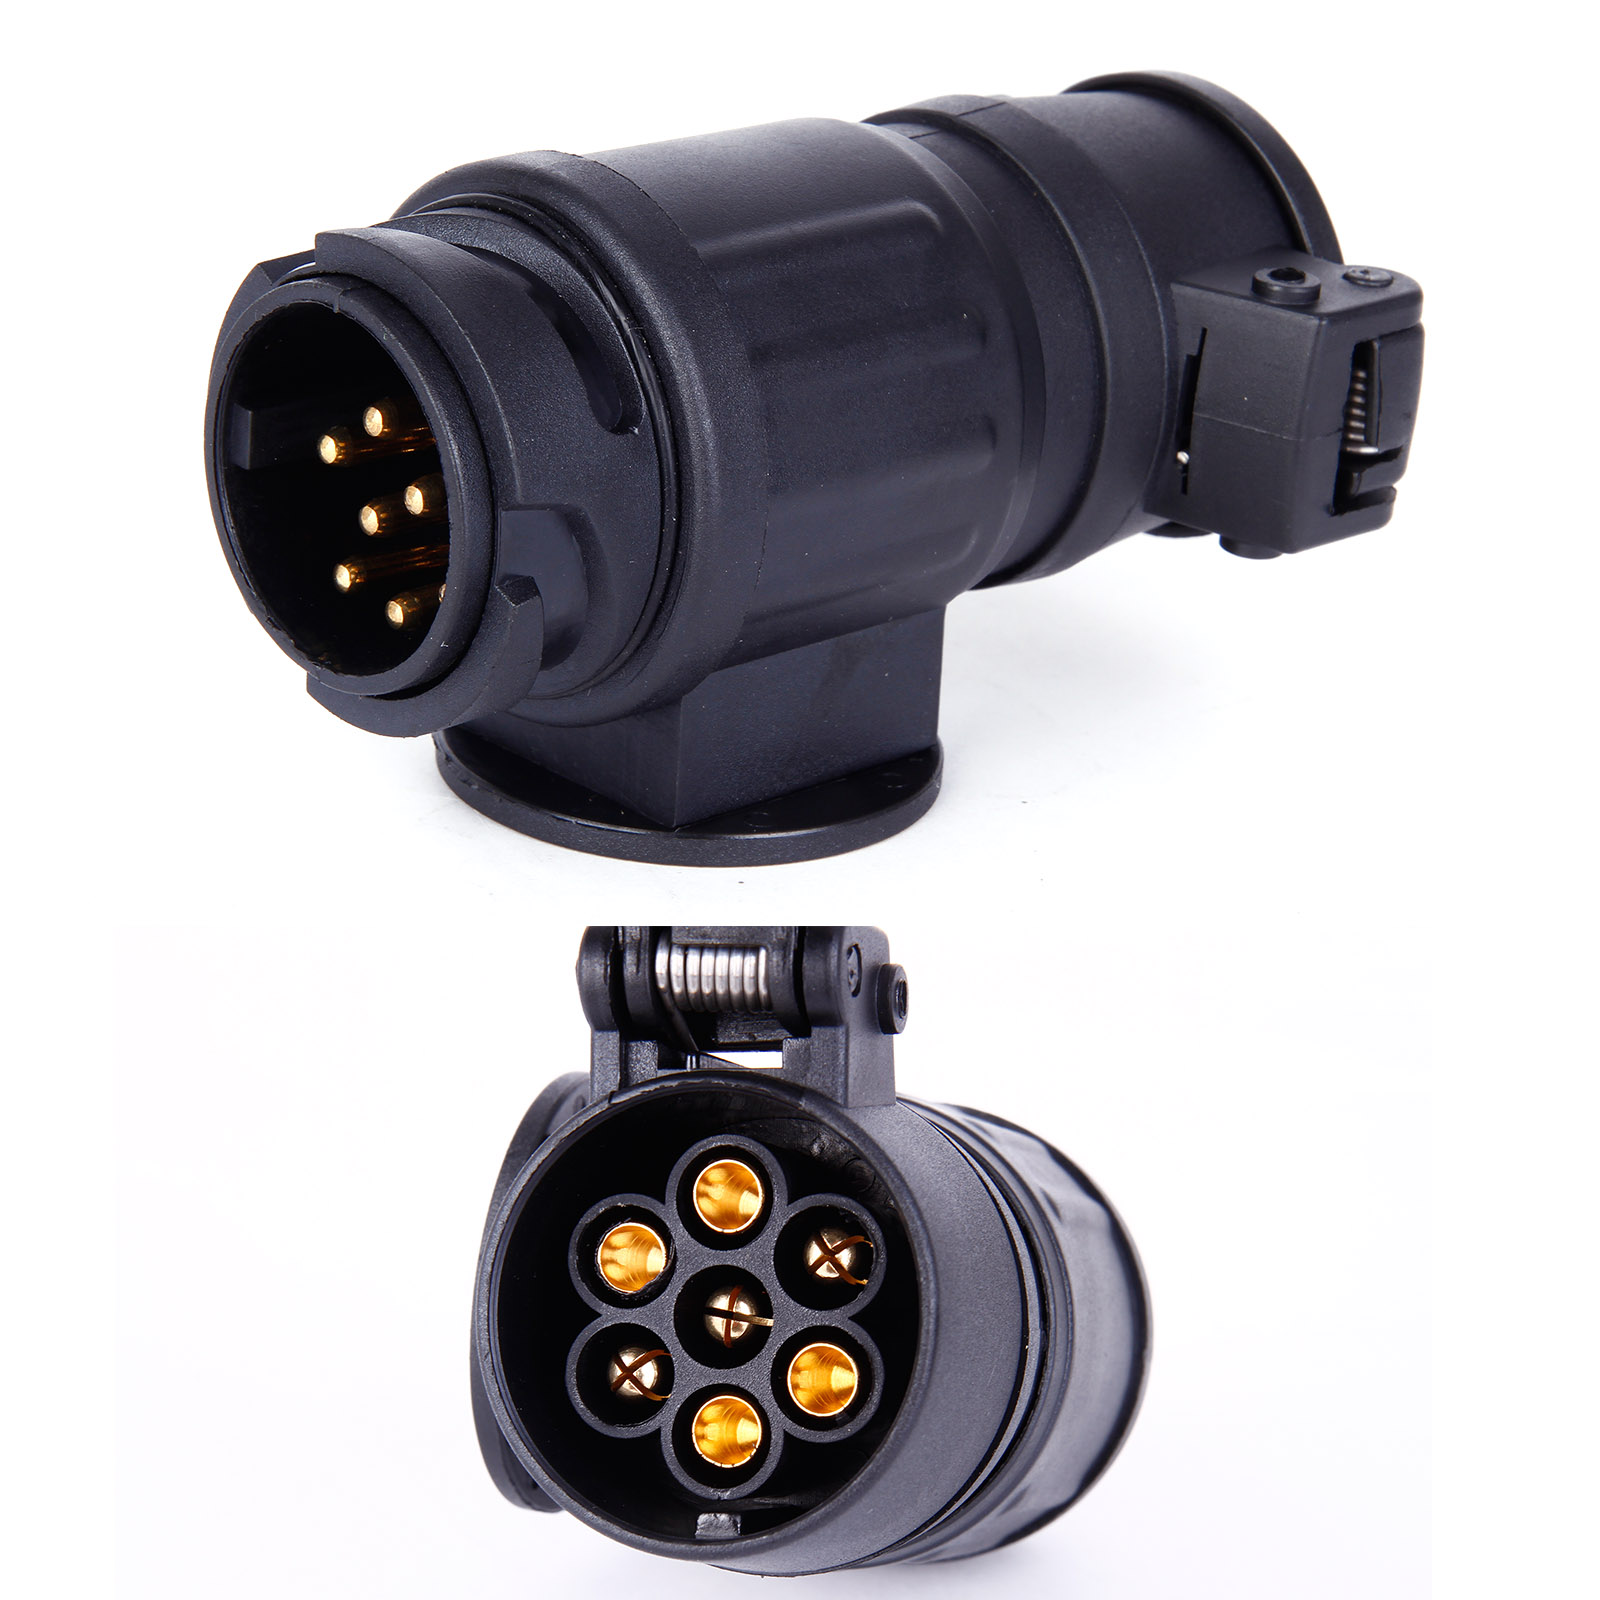 hight resolution of details about trailer caravan wiring light 13 pin to 7 pin 12n plug adapter converter